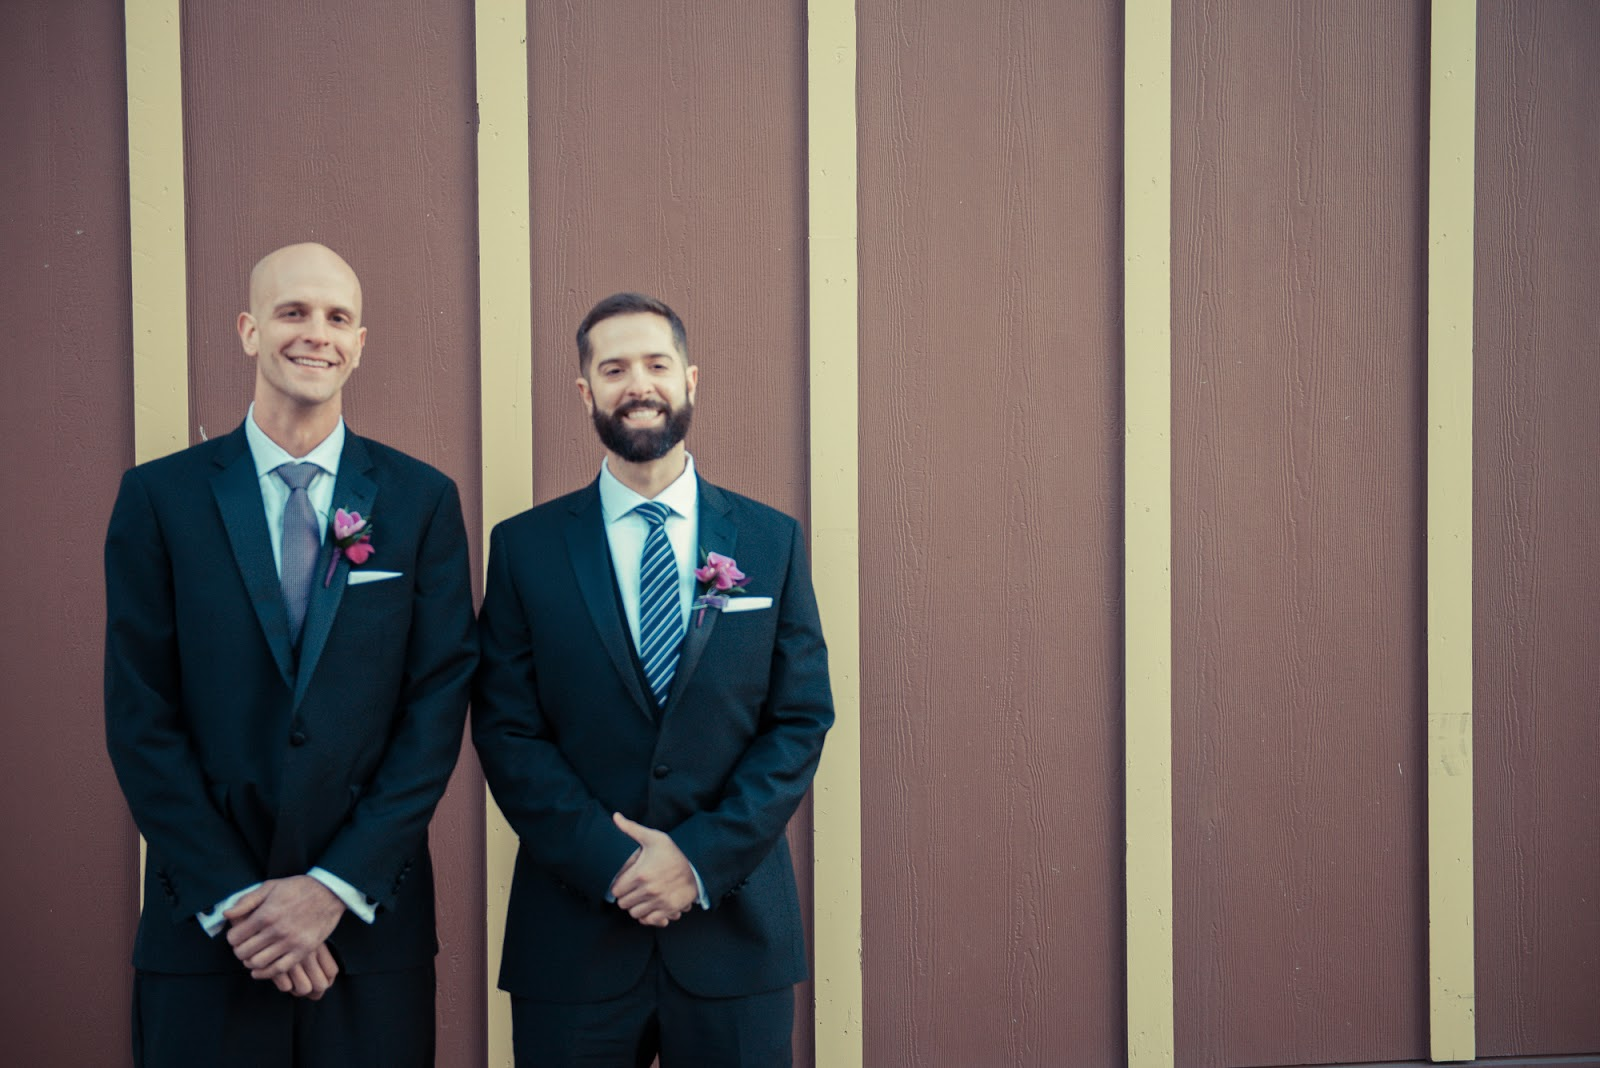 Groom and best man photo shoot - culitvatedrambler.com